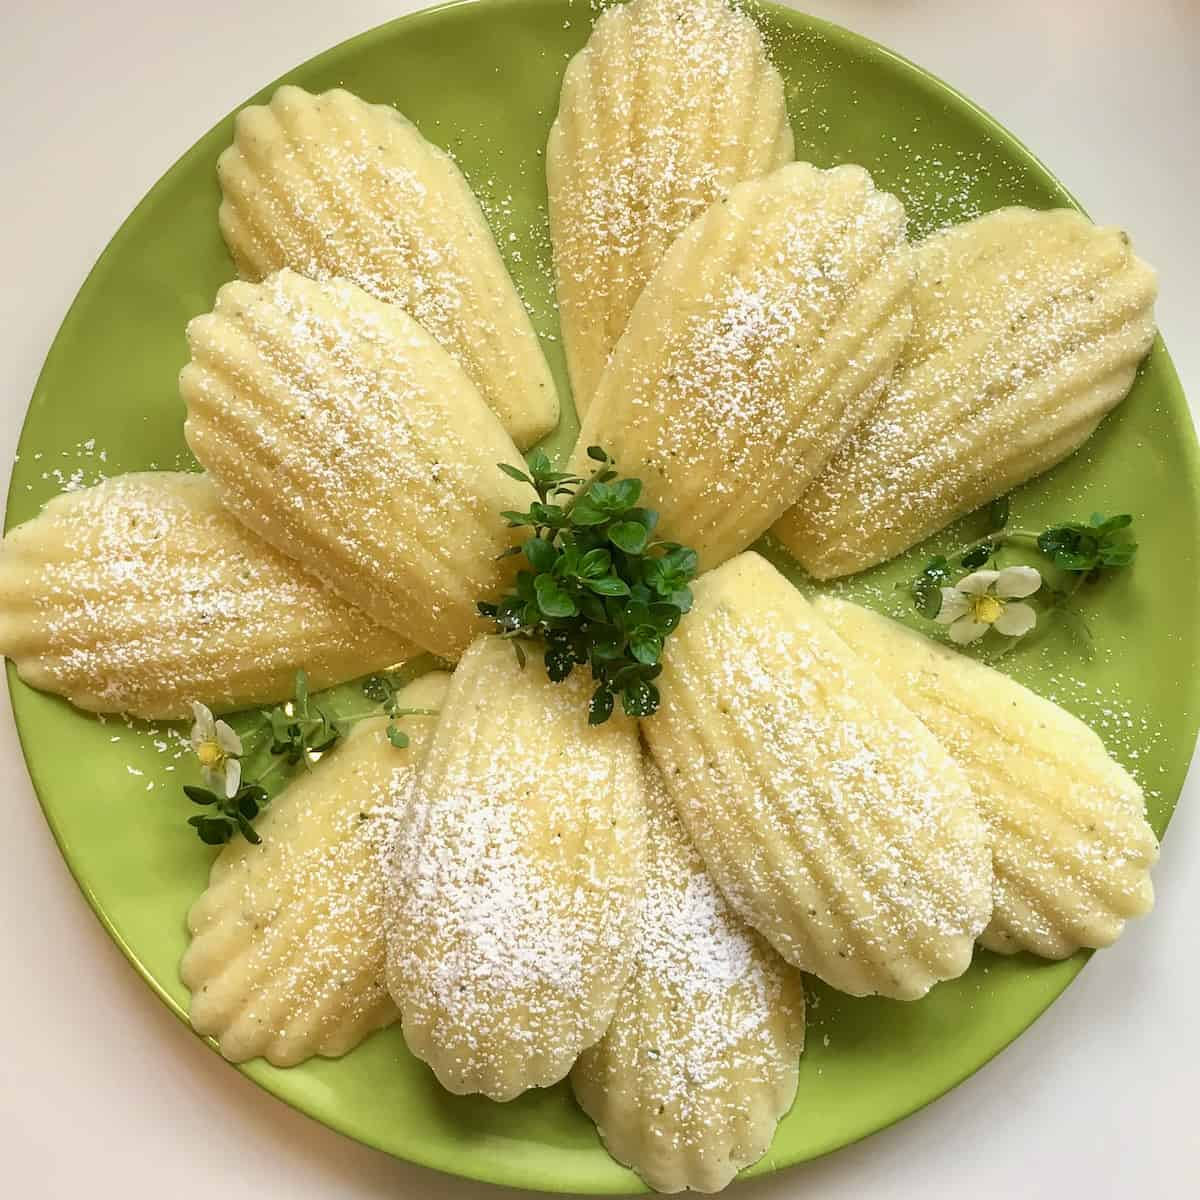 lemon thyme madeleines are good food for thought